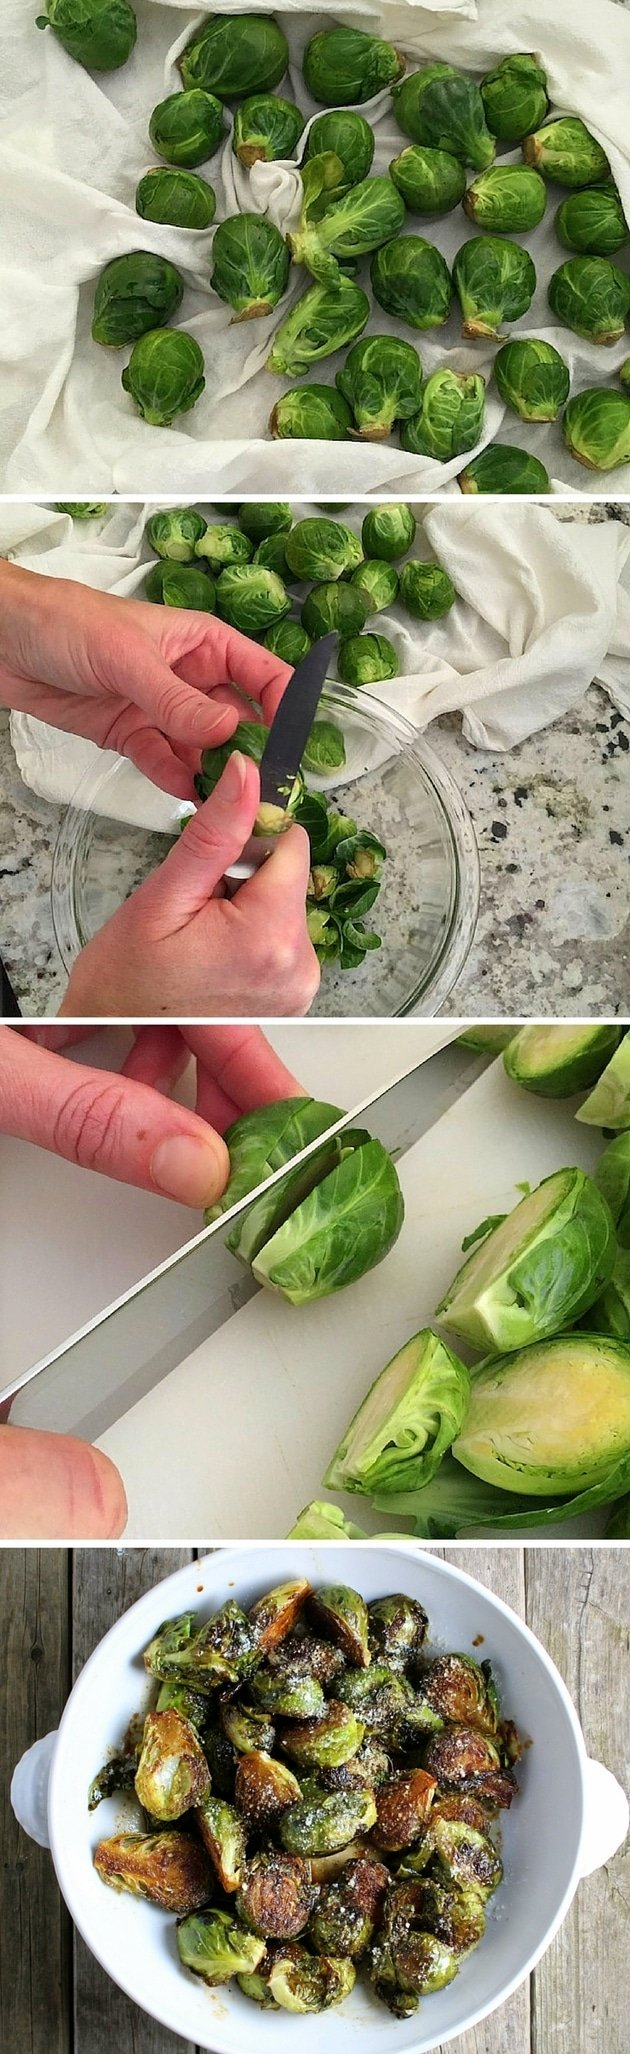 These Balsamic Glazed Brussels Sprouts are the perfect balance of savory and sweet!  #sauteed #healthy #recipes #veggies #tasteandsee.com || https://tasteandsee.com ||